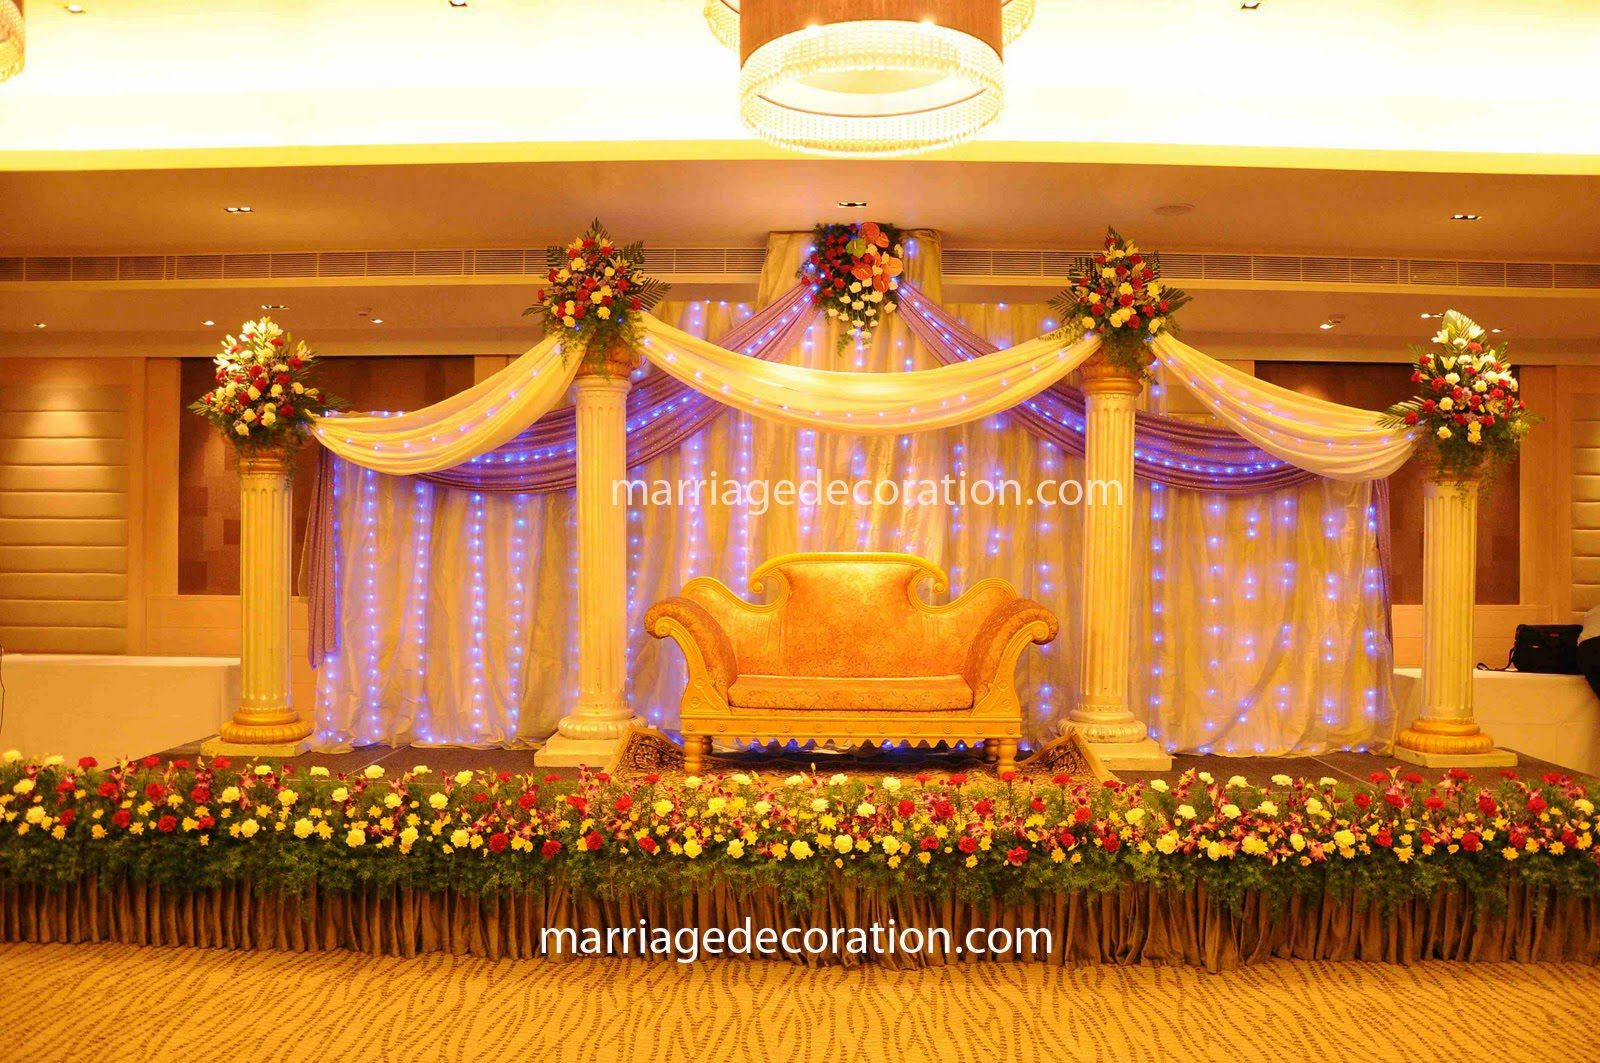 Pictures for decorating a church wedding free wedding for Hall decoration images